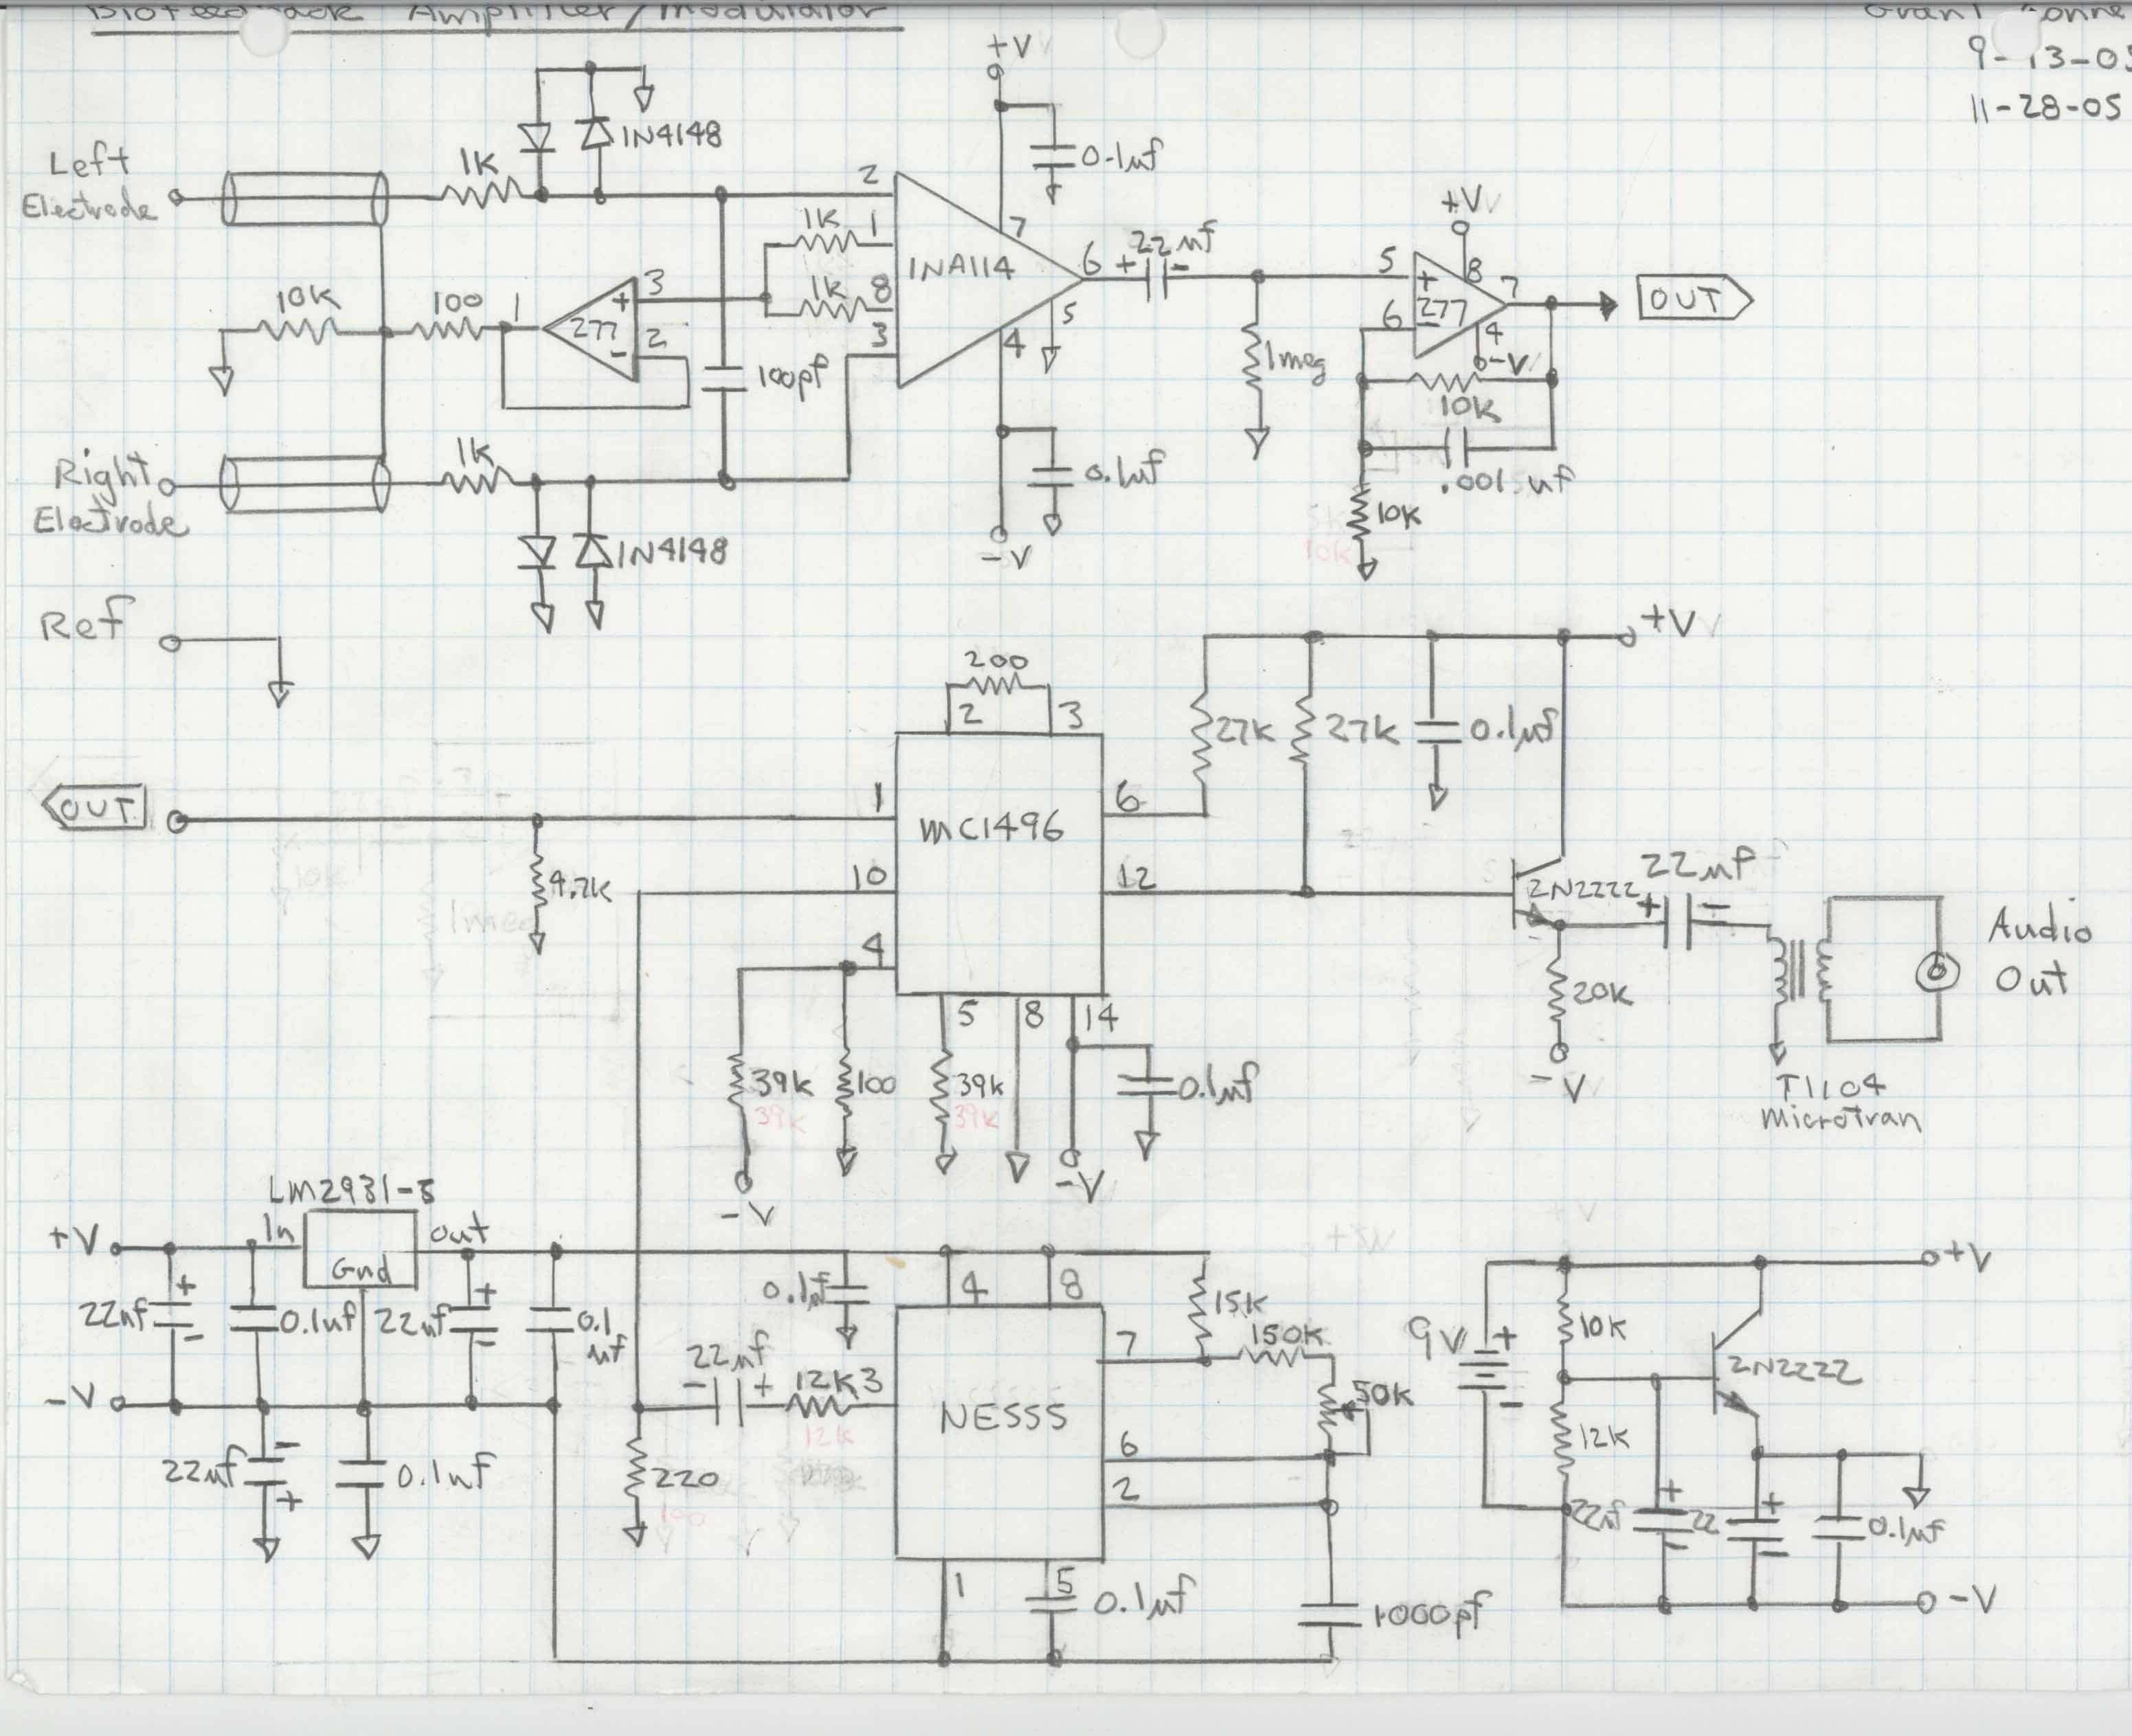 Soundcardeeg Sceeg Prototype Fm Transmitter Circuit Stripboard Layout 2 The Unit Schematic Can Be Downloaded From Sheet 1 And Software For Prototypes Eeg Probe Install